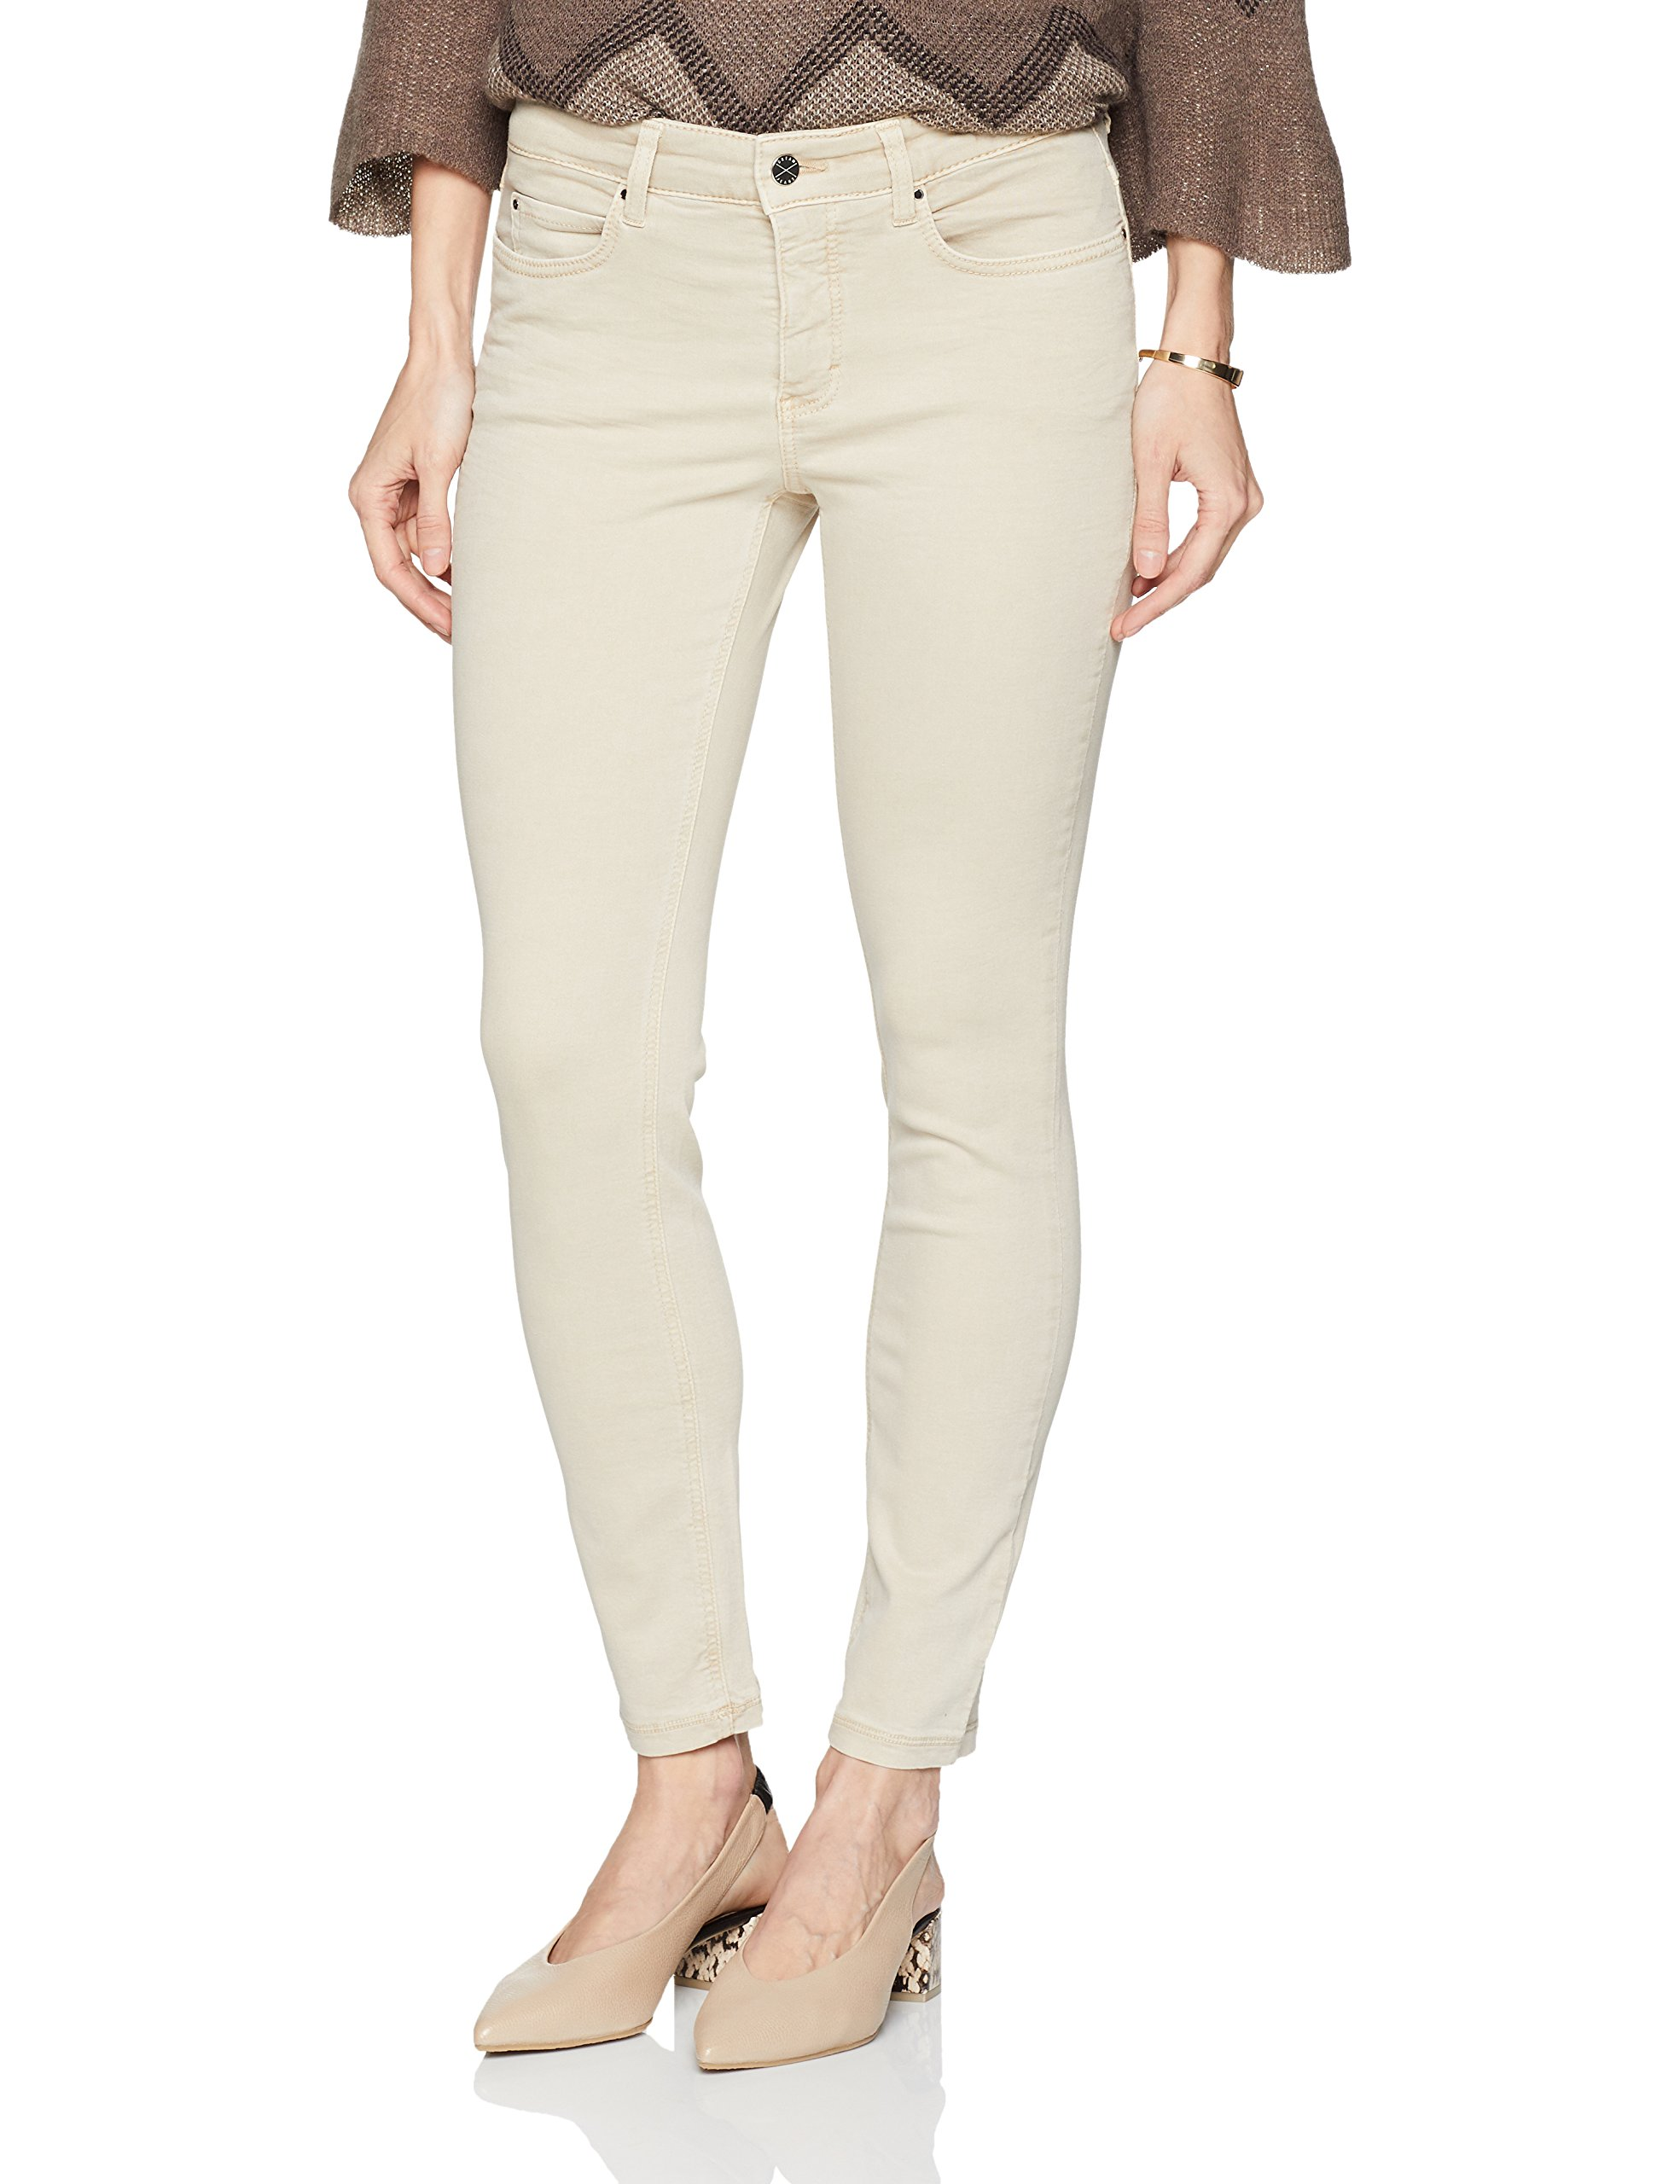 32Femme Jeans Mac Jean Tools Droitsmooth Beige l32taille Dream Fabricant38 214wW38 Skinny CoeBxd